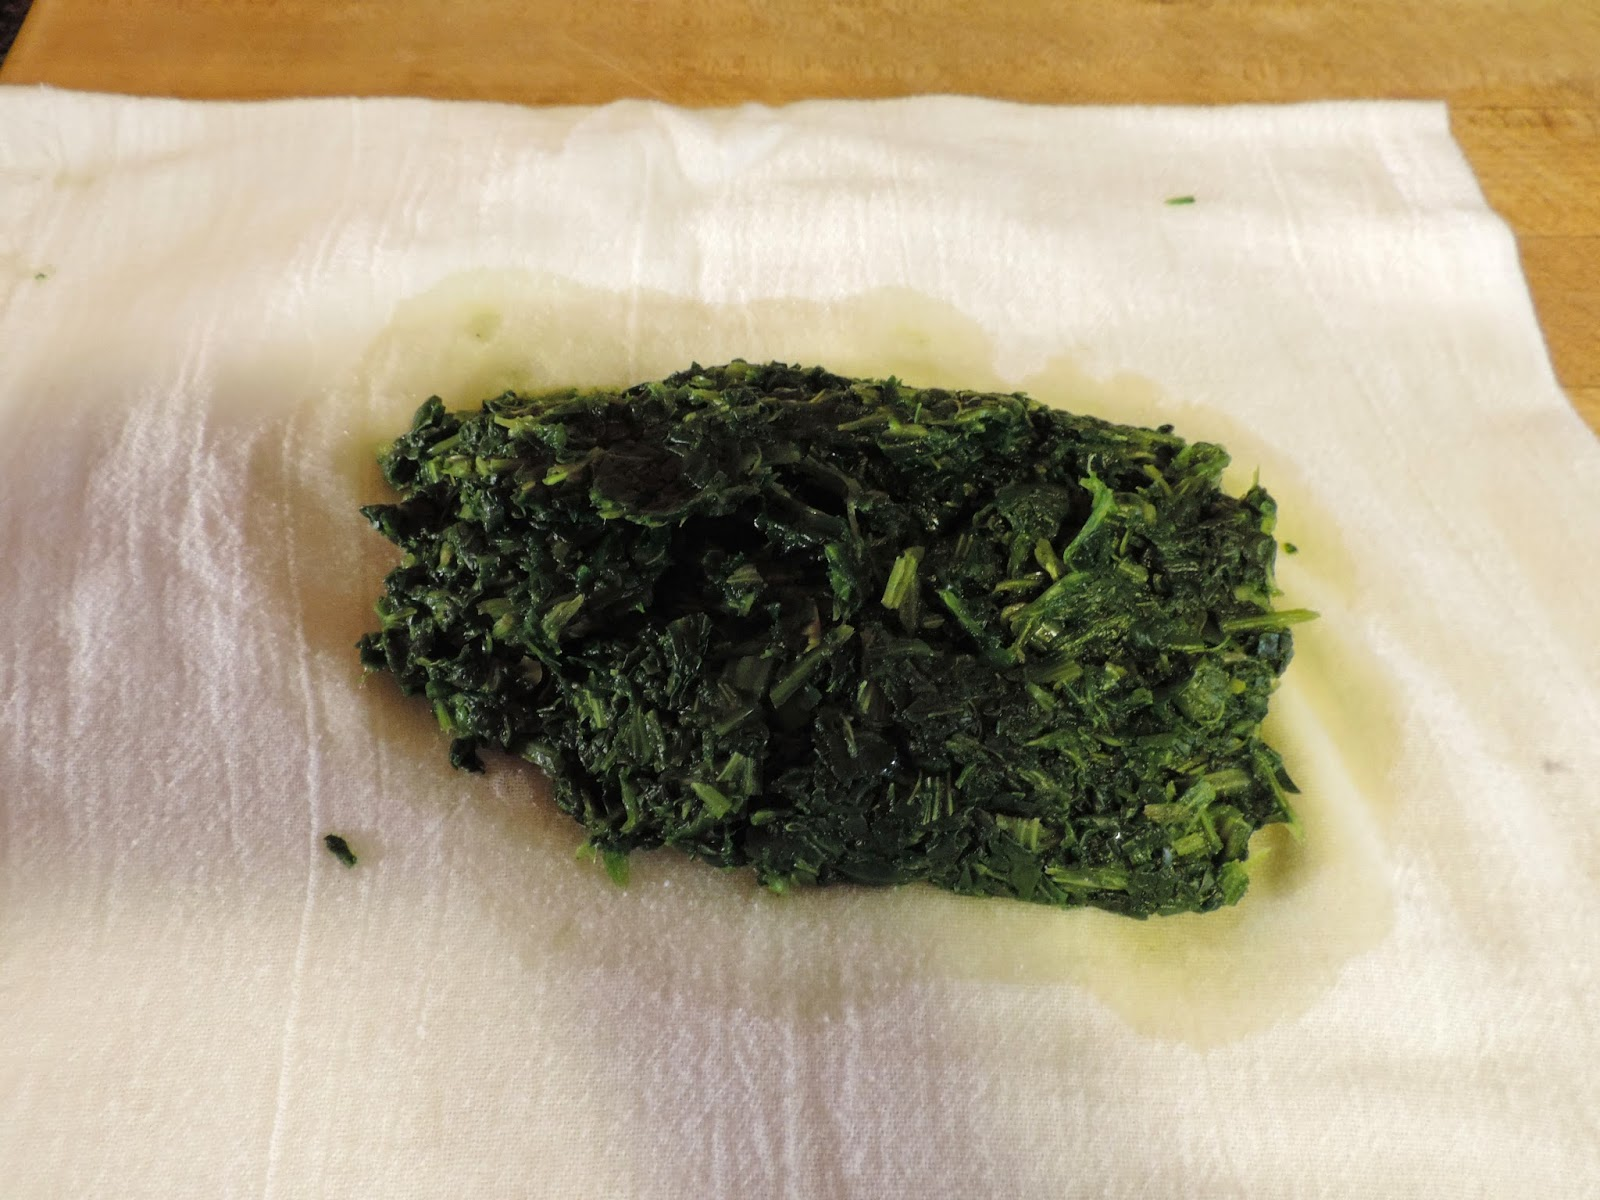 The spinach wrung dry in a towel.